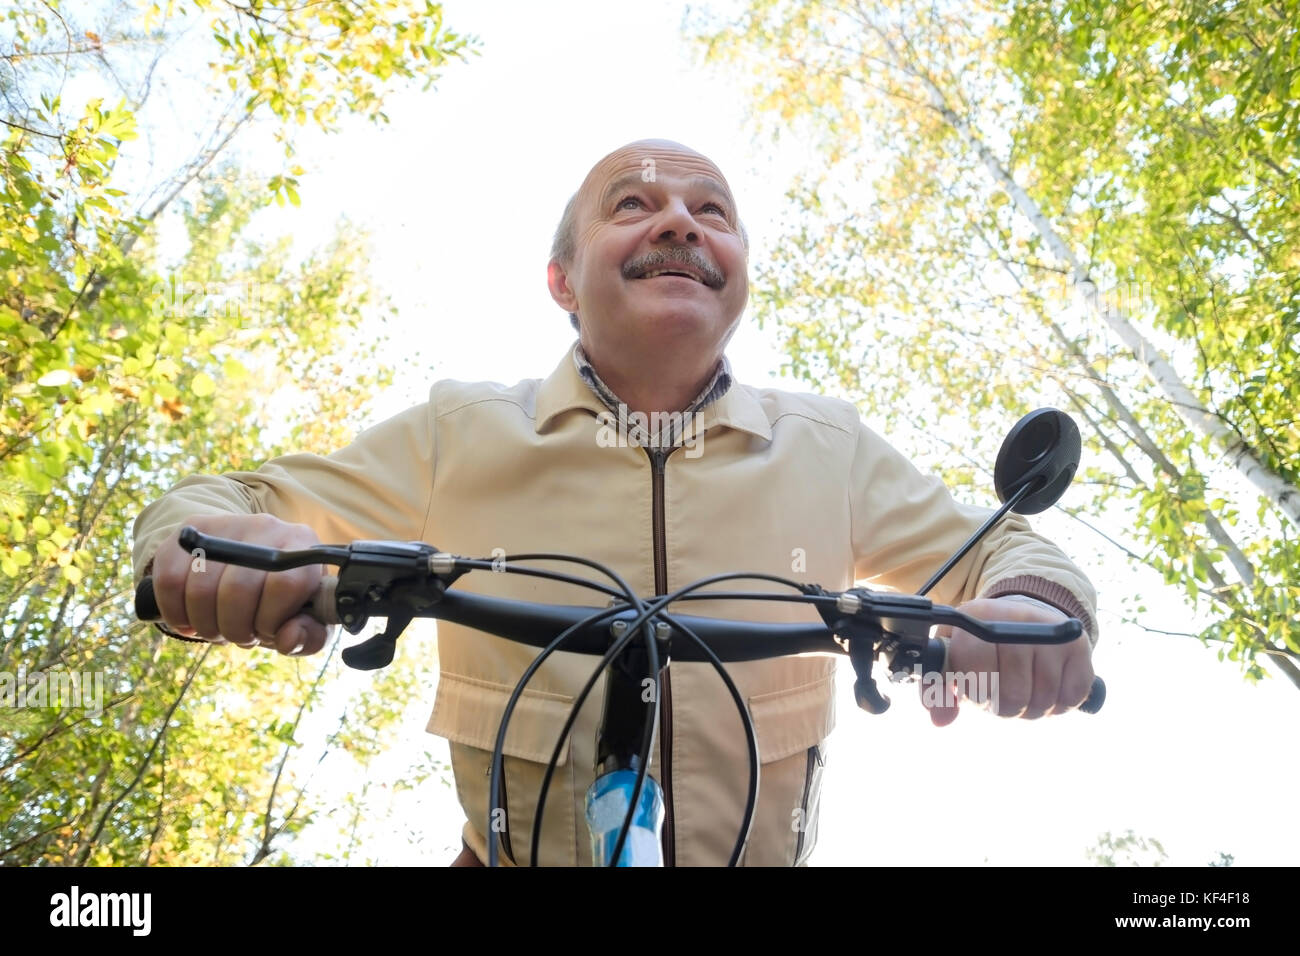 Senior caucasian man on cycle ride in countryside. Green trees on background. He is happy and active. - Stock Image